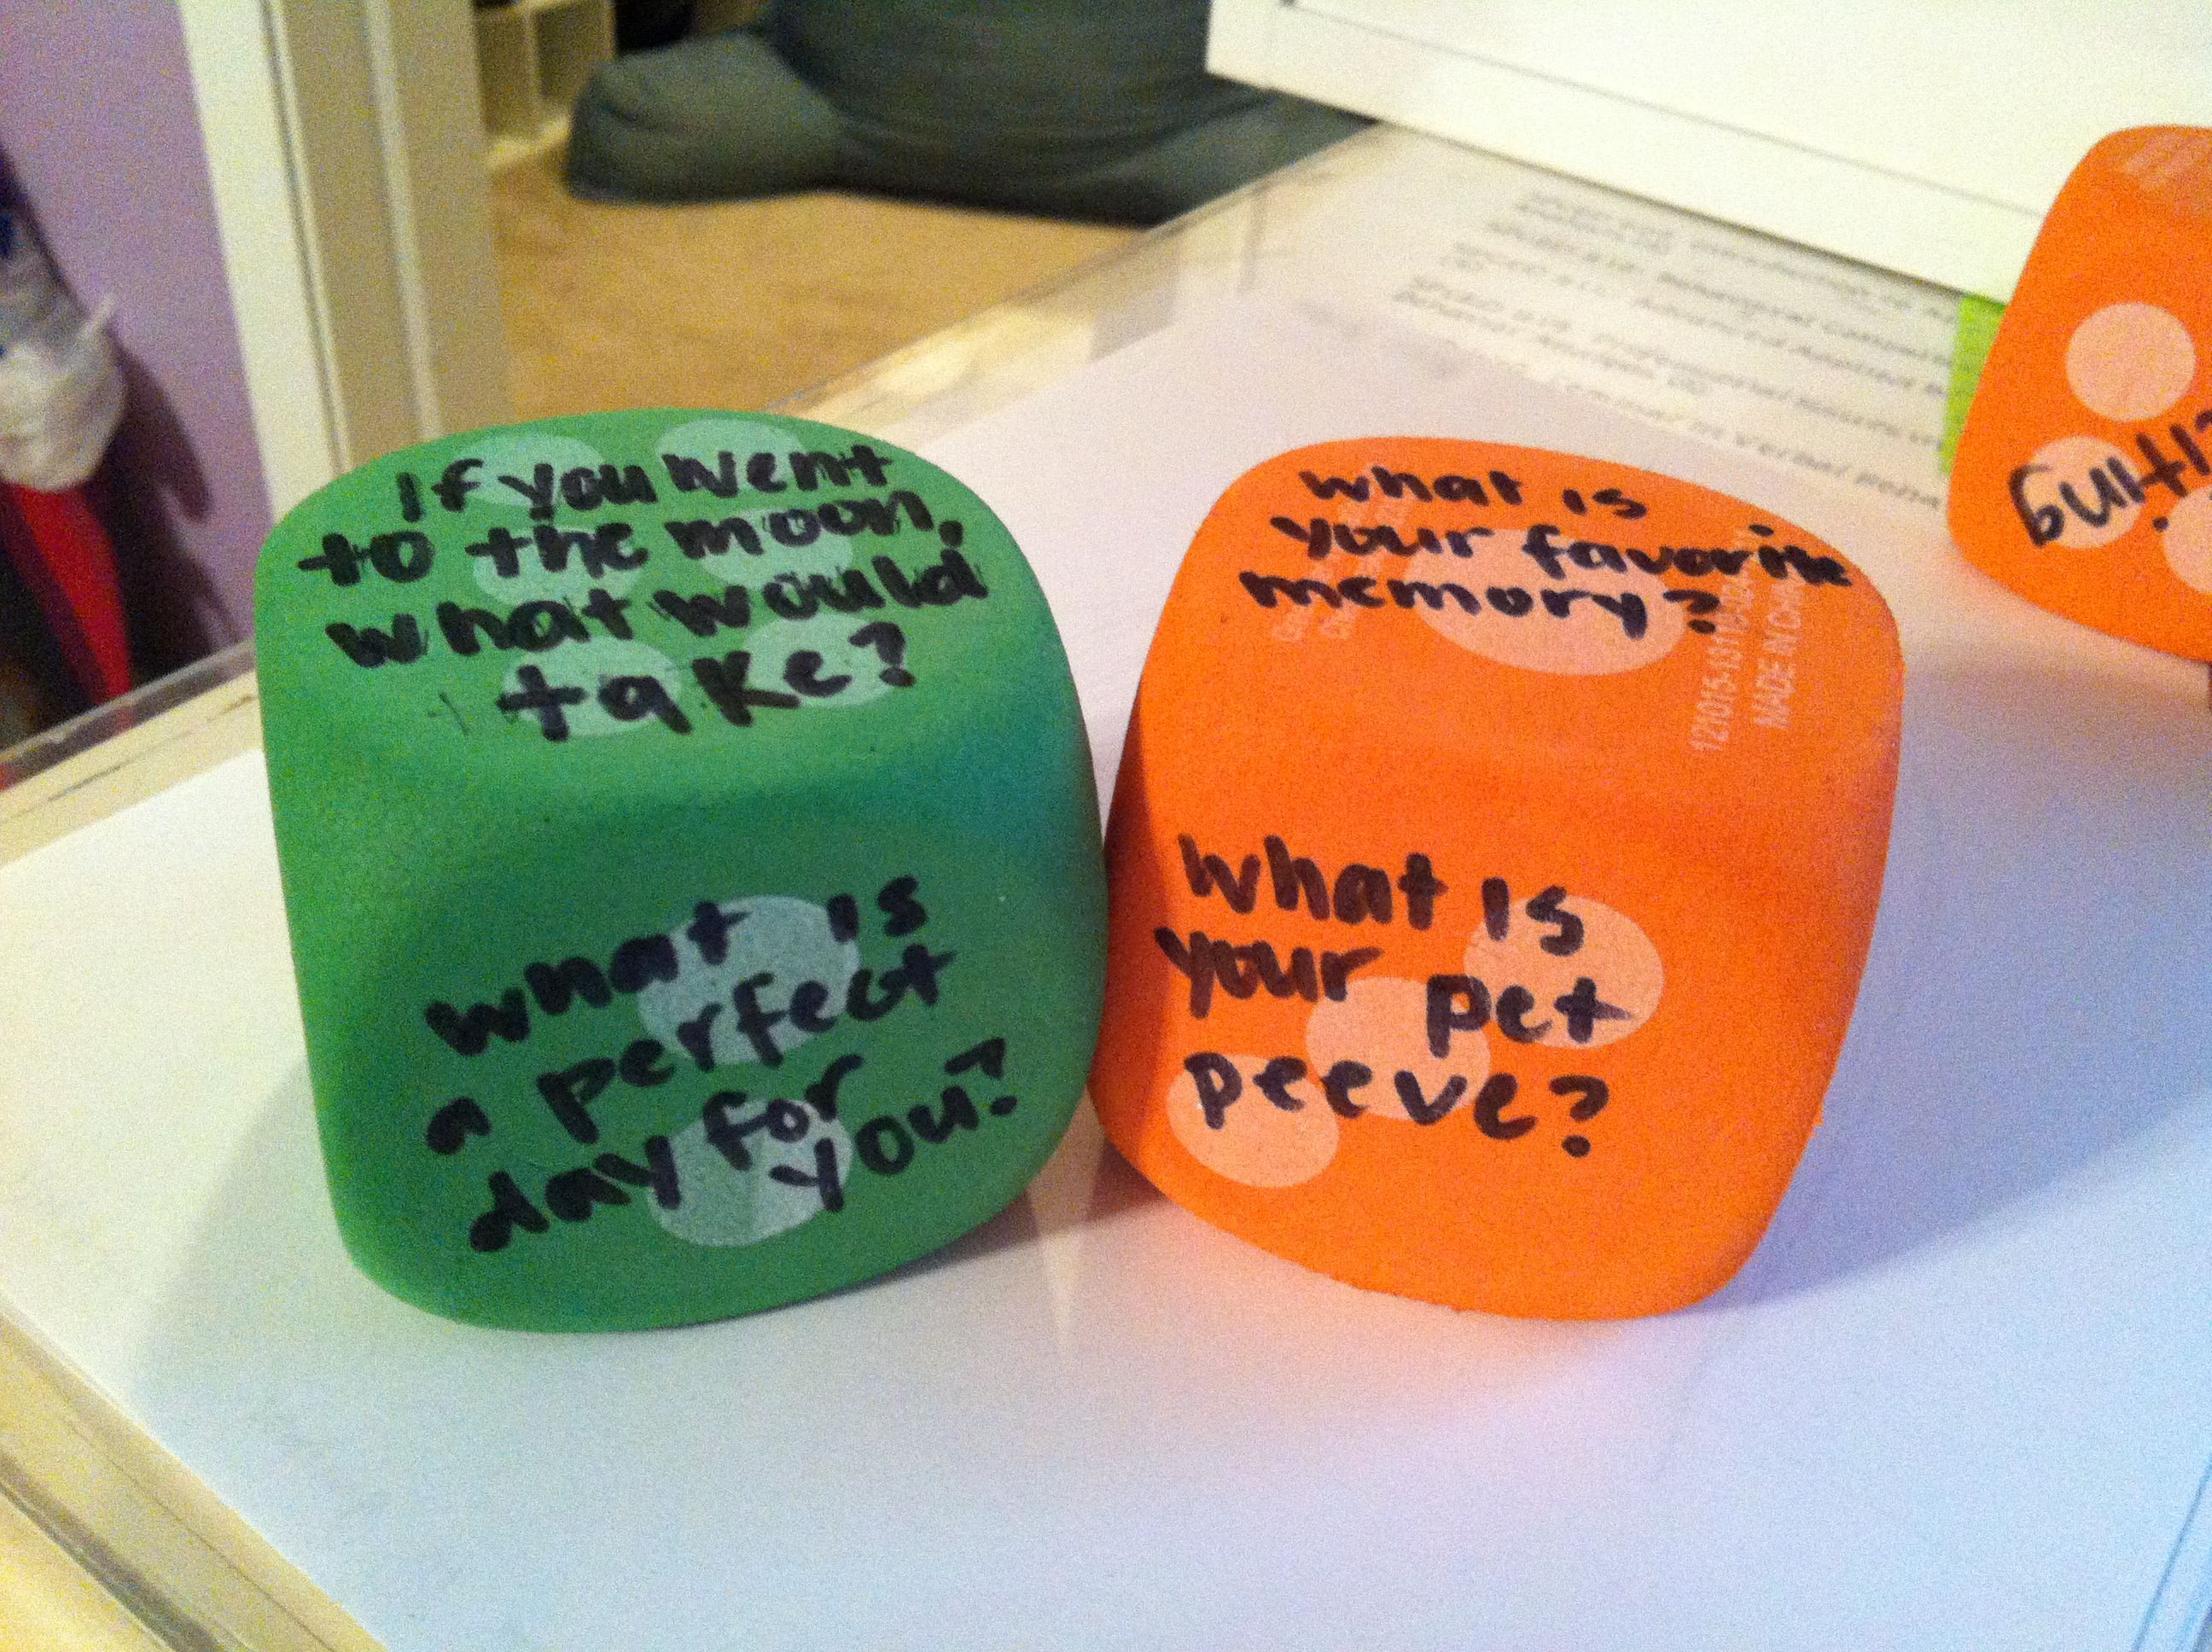 Foam dice from the dollar store. Getting to know you questions.